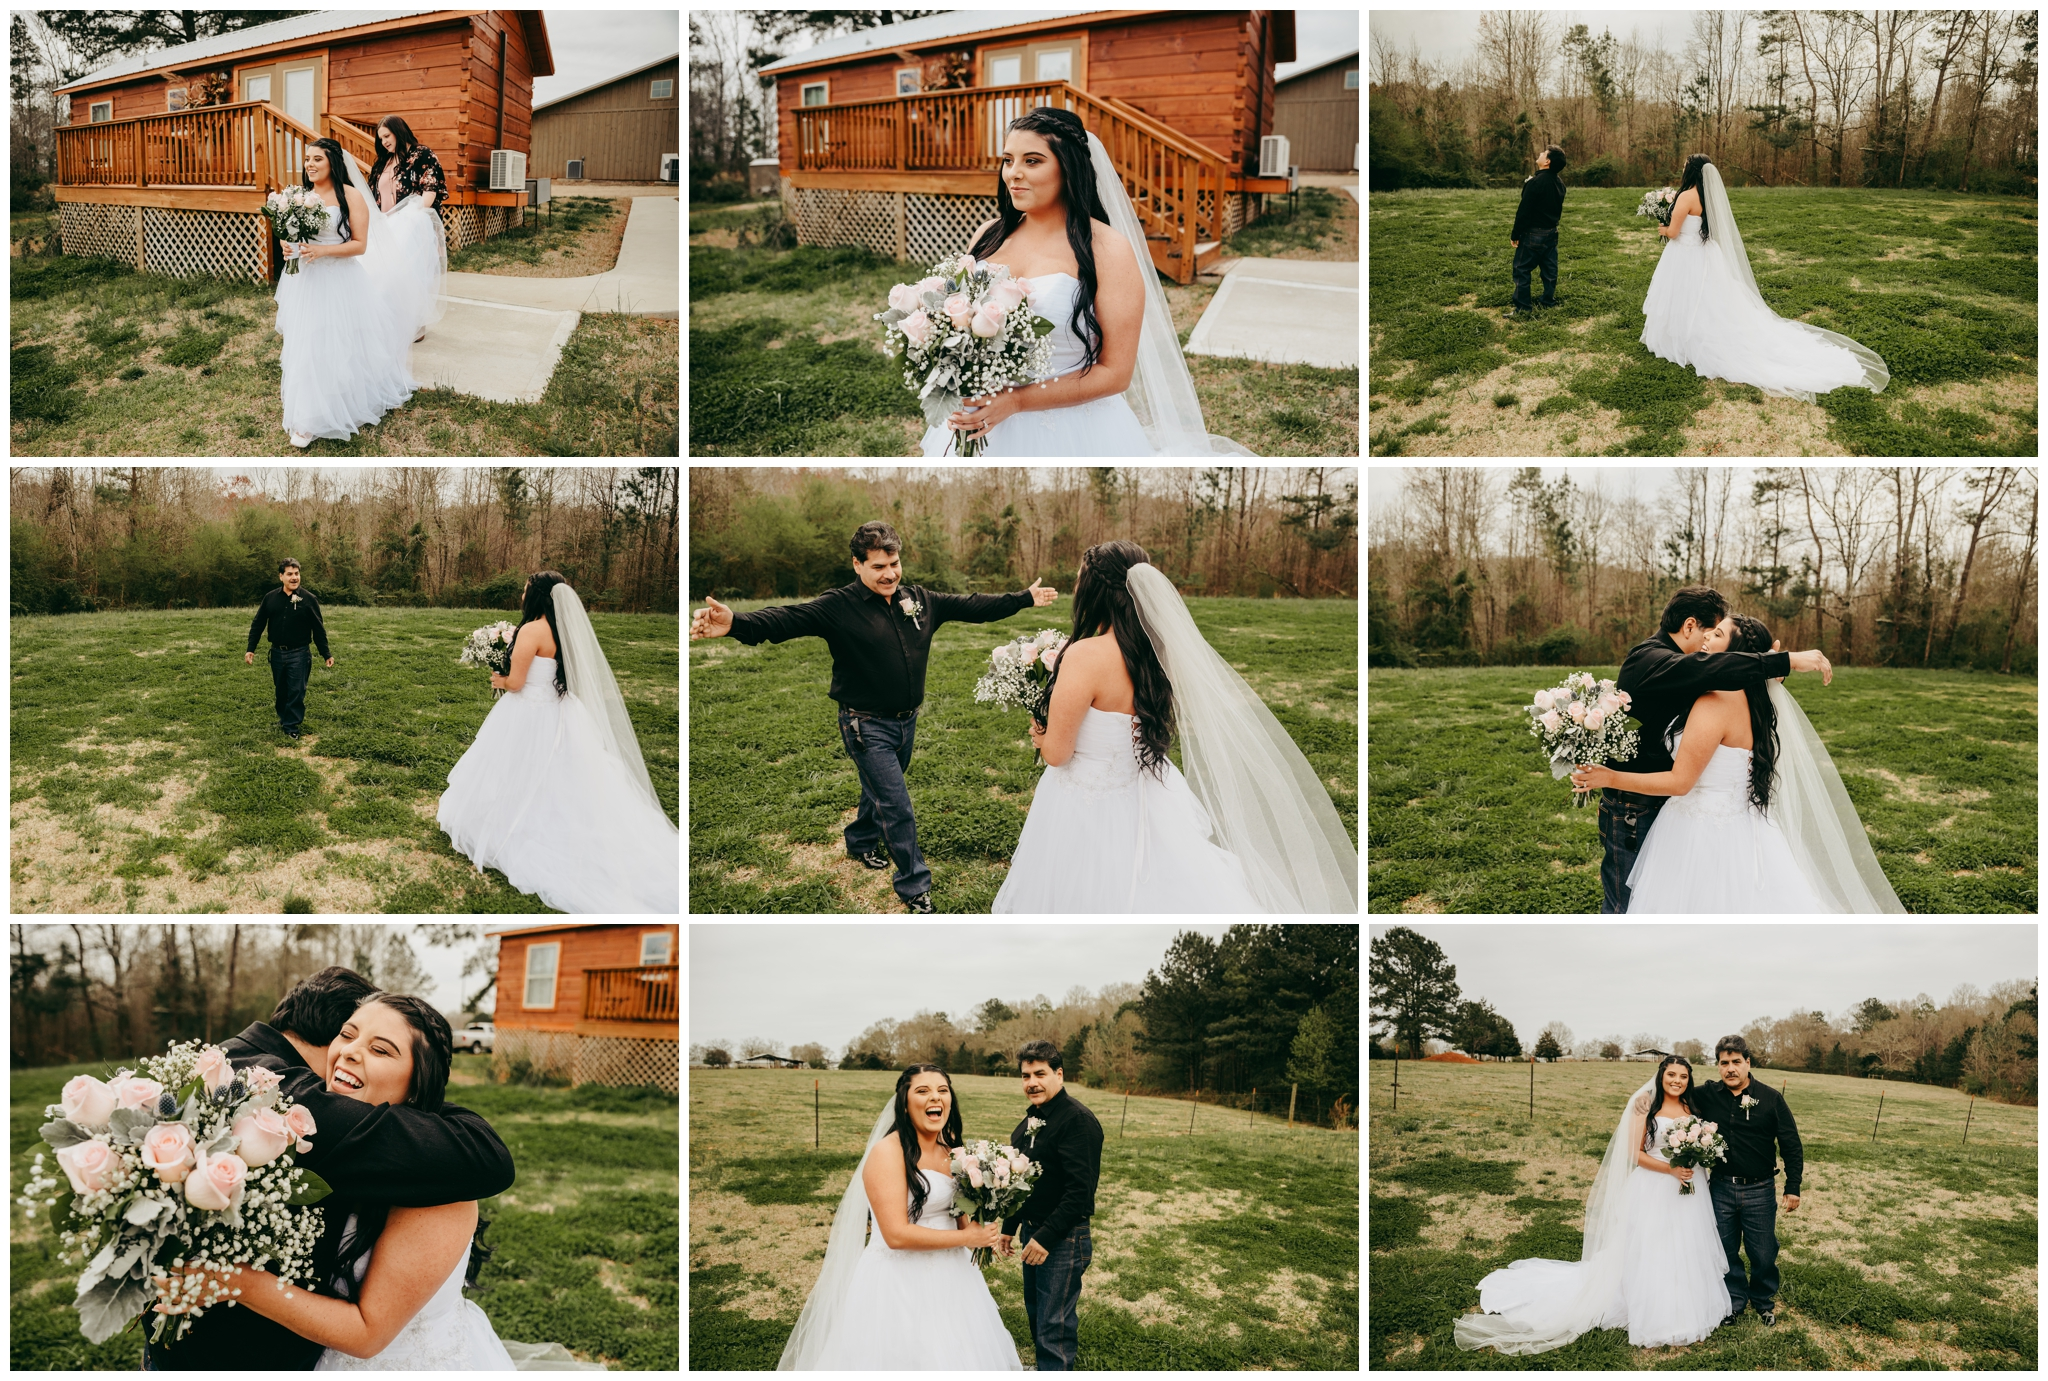 Veronika's first look with her father had me in tears. He gracefully hugged his sweet little princess one last time before preparing to give her away …